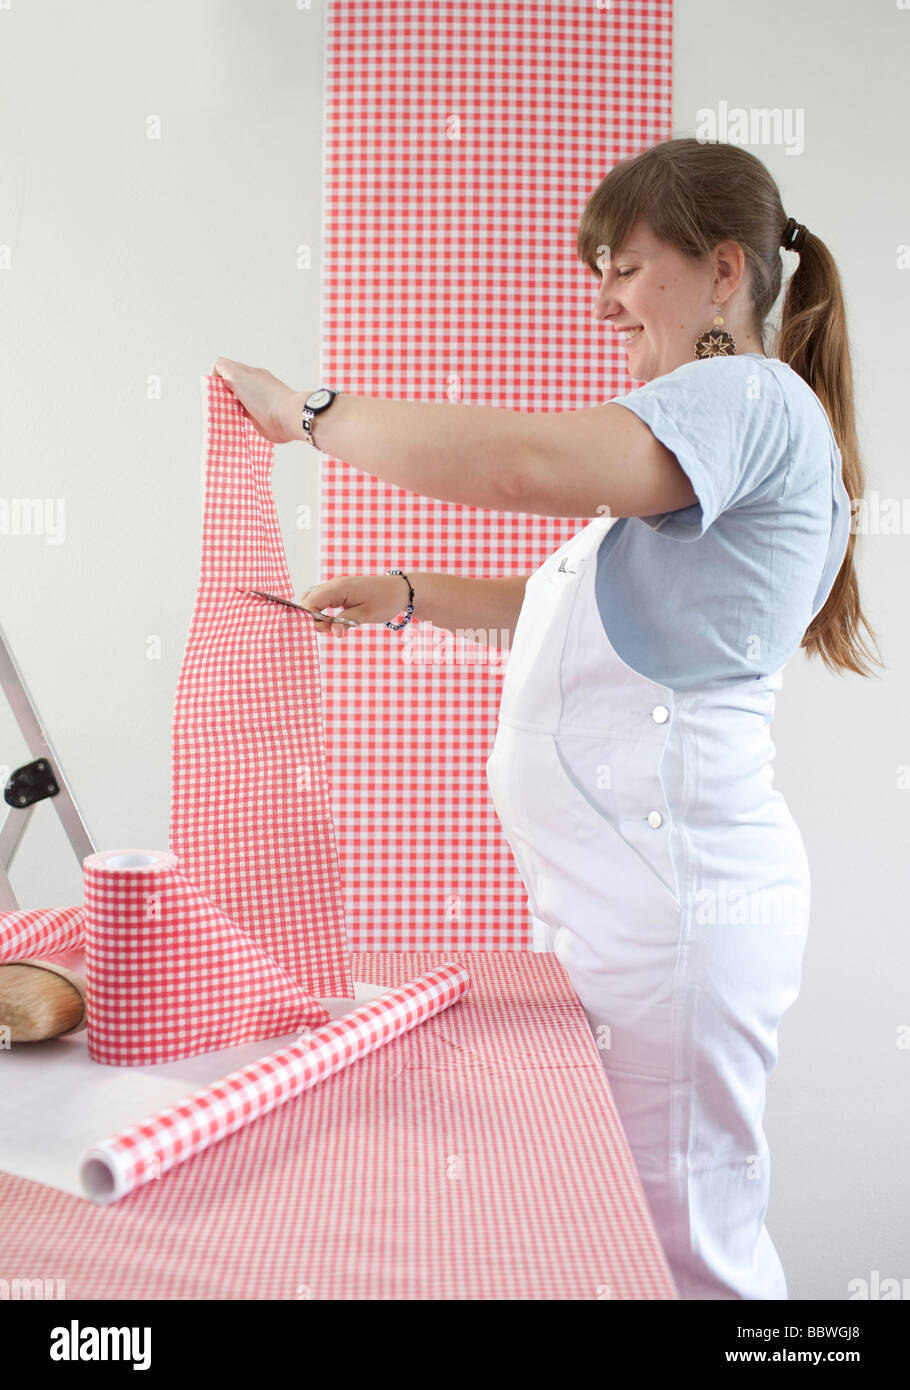 Pregnant woman is paperhanging Stock Photo